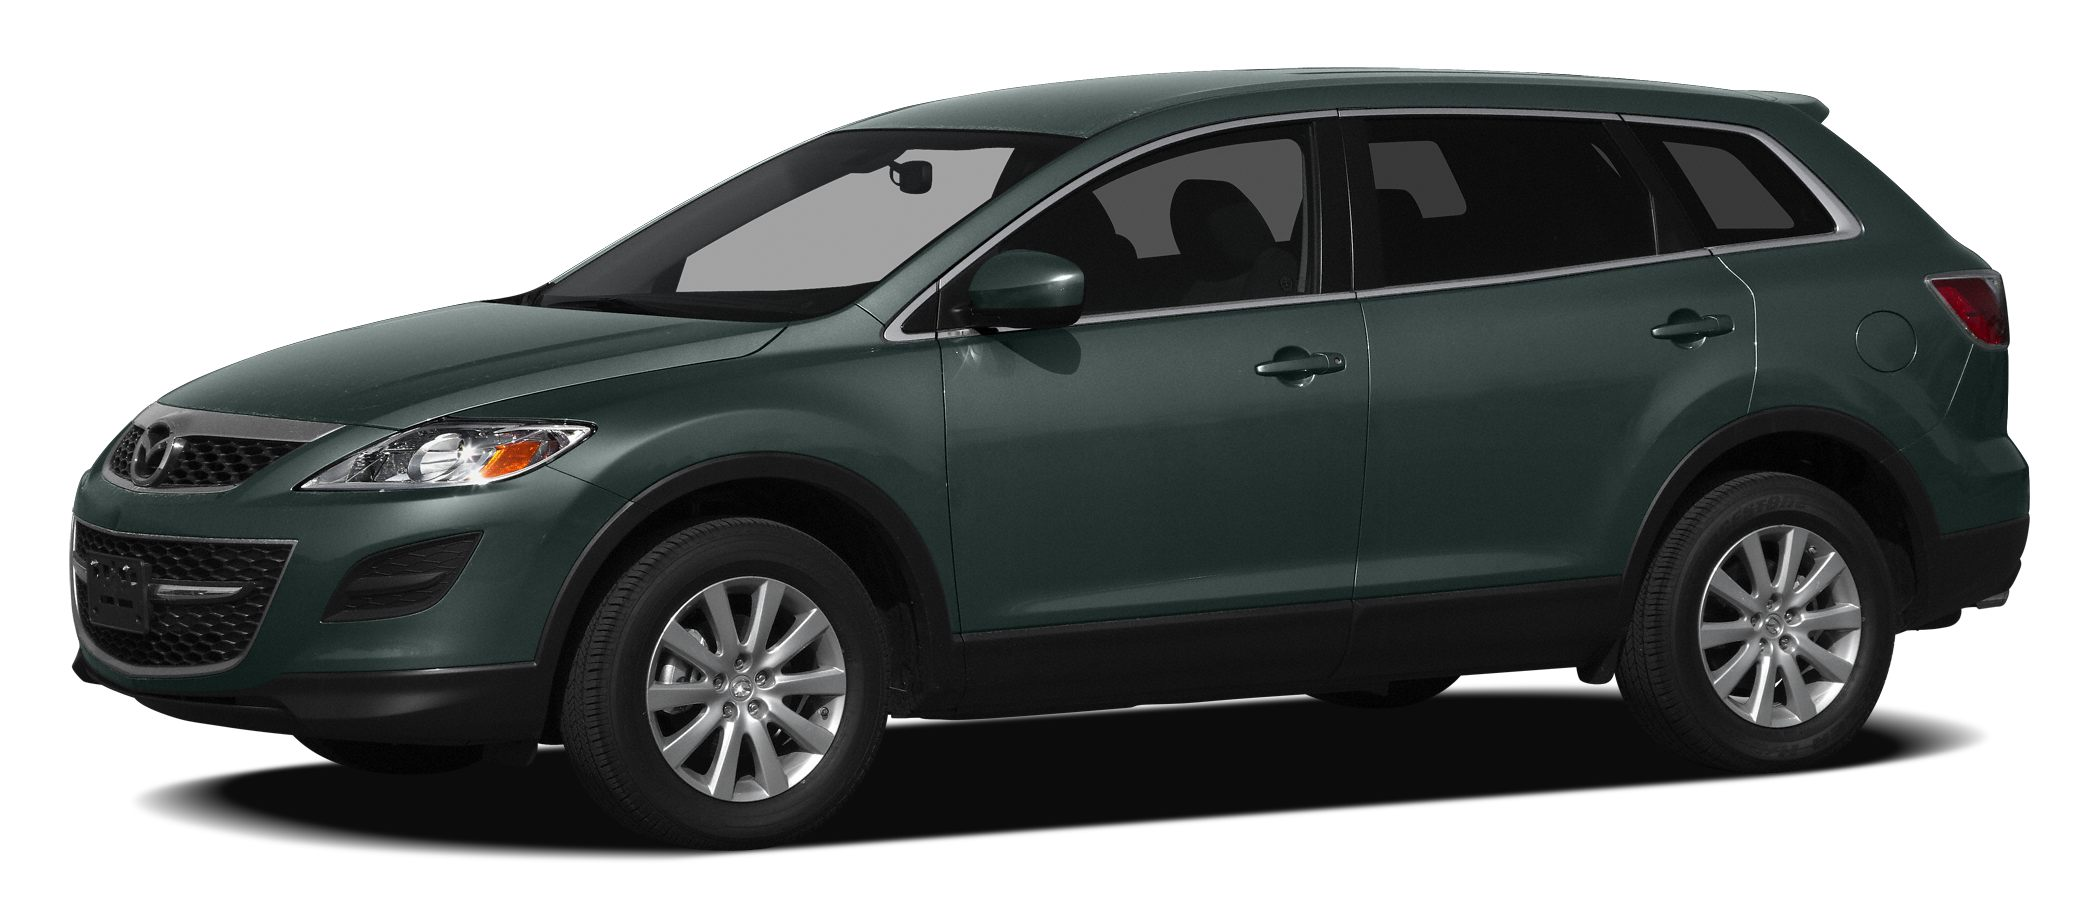 2011 Mazda CX-9 Touring CARFAX CERTIFIED AWD Leather HEATED SEATS 3rd Row Seating clean NON-SMOKER